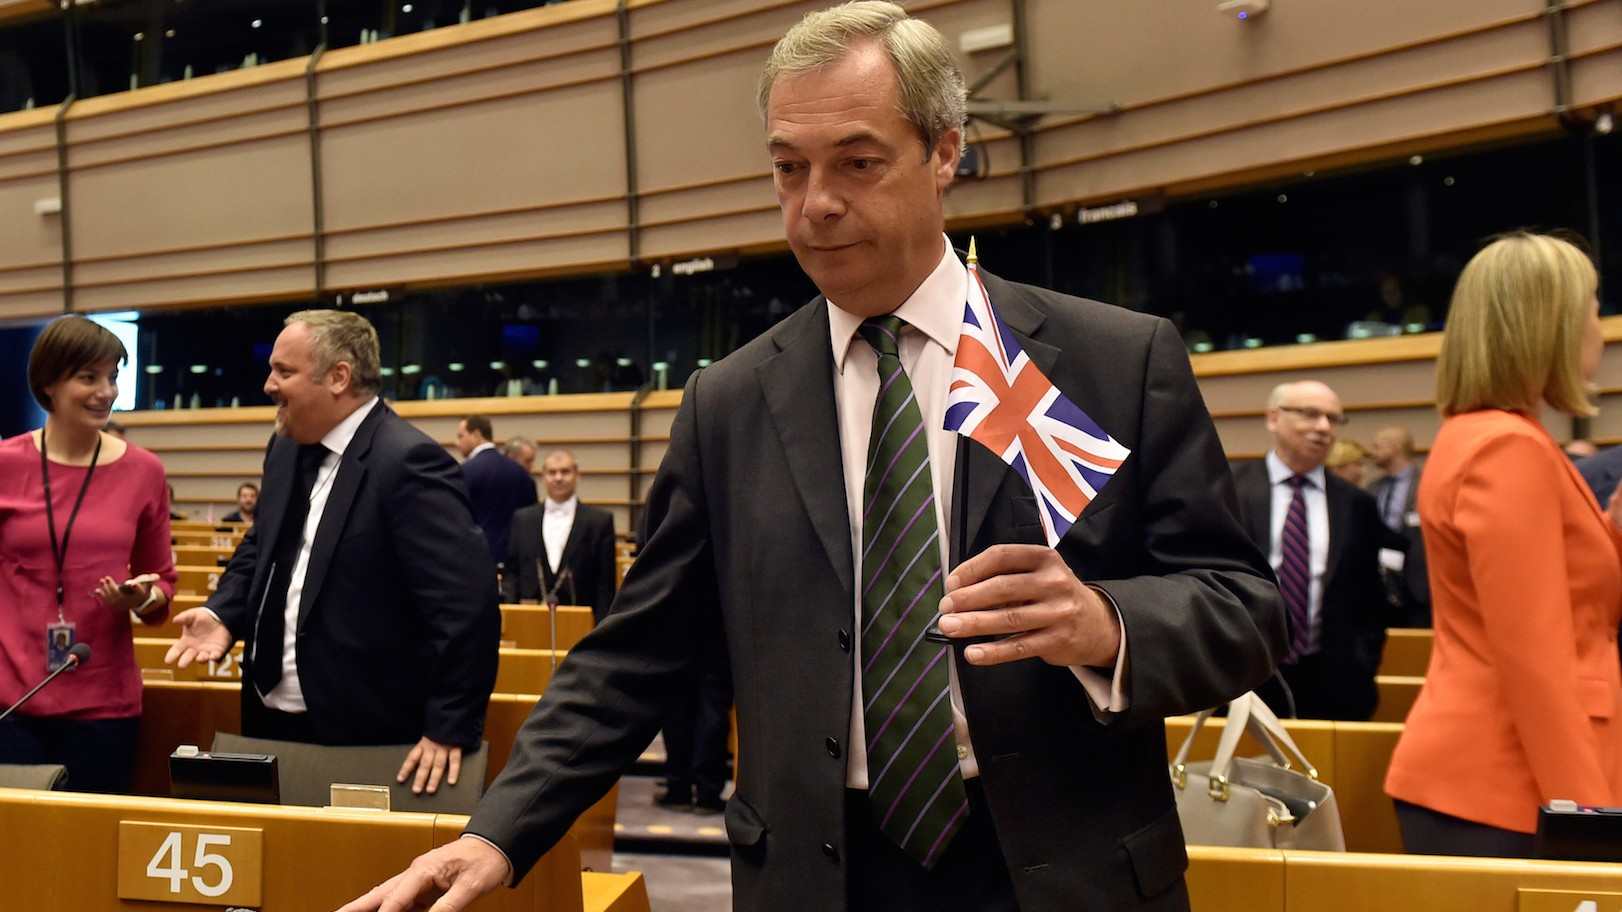 Britain's Nigel Farage to EU leaders: 'You're not laughing now, are you?'